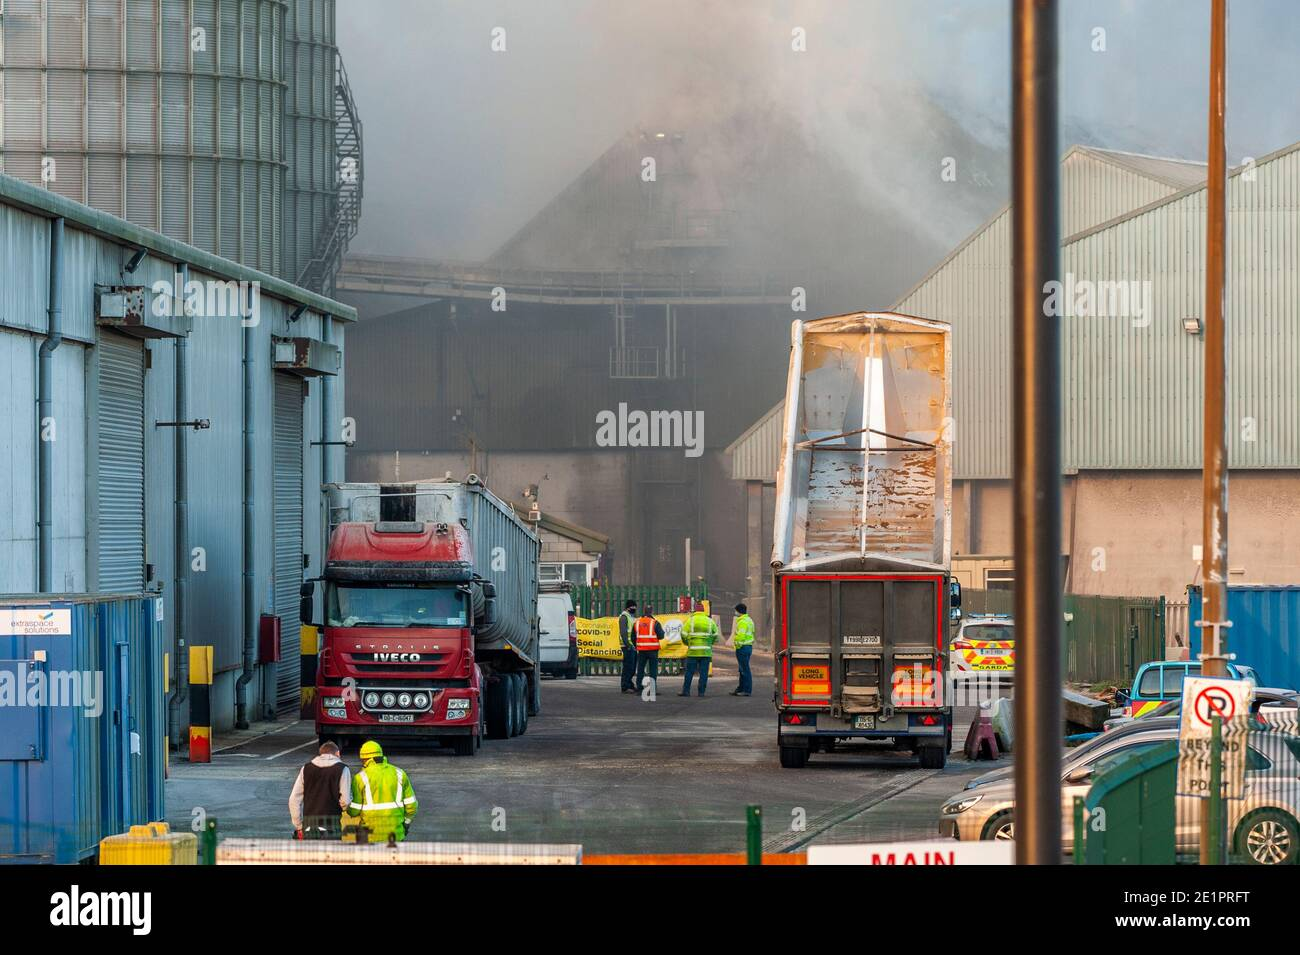 ringaskiddy-cork-ireland-9th-jan-2021-a-major-fire-in-the-port-of-cork-ringaskiddy-has-been-brought-under-control-the-fire-is-believed-to-have-started-in-an-animal-feed-facility-at-rh-hall-no-injuries-have-been-reported-the-port-was-evacuated-credit-ag-newsalamy-live-news-2E1PRFT.jpg